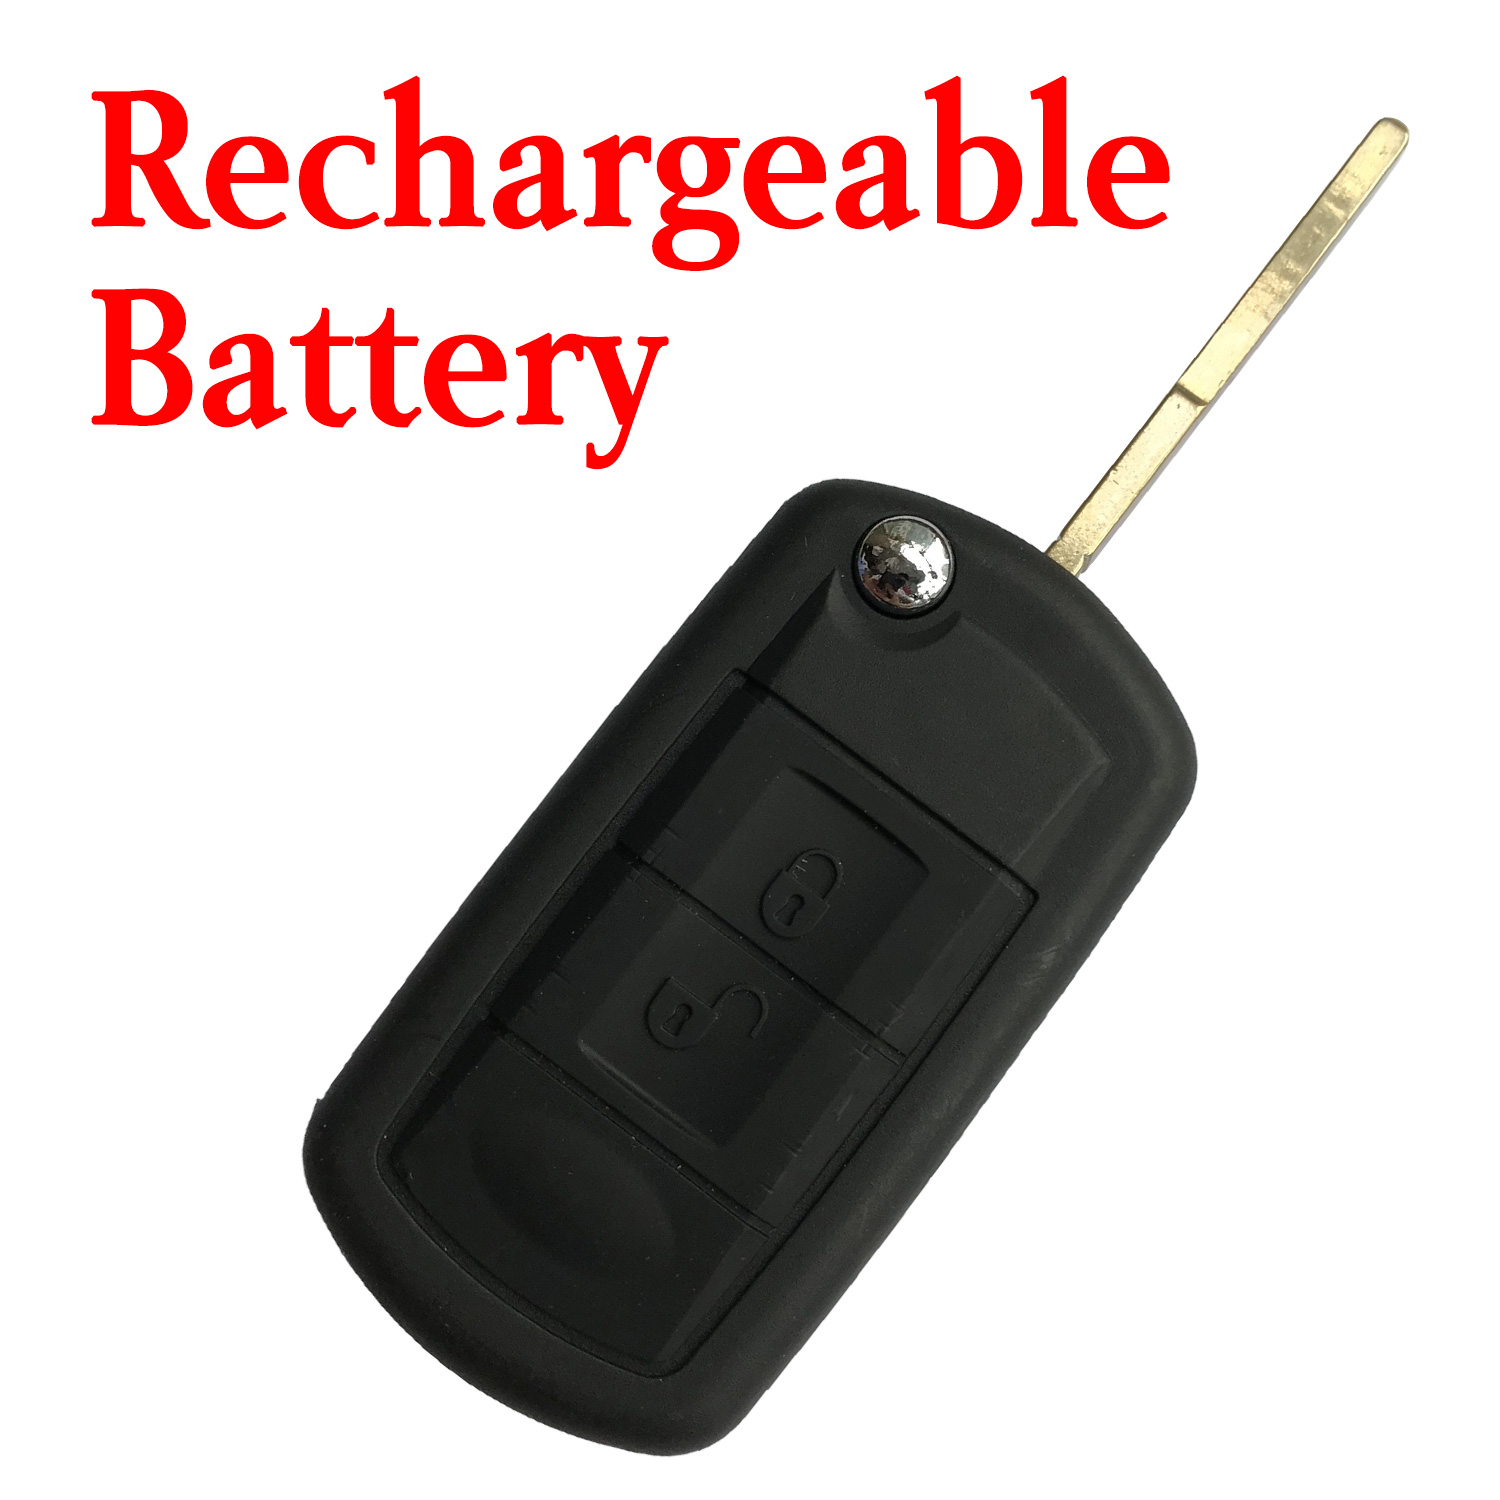 3 Buttons 434 Mhz Flip Remote Key for Land Rover Sport Discovery Vogue - With Rechargeable Battery